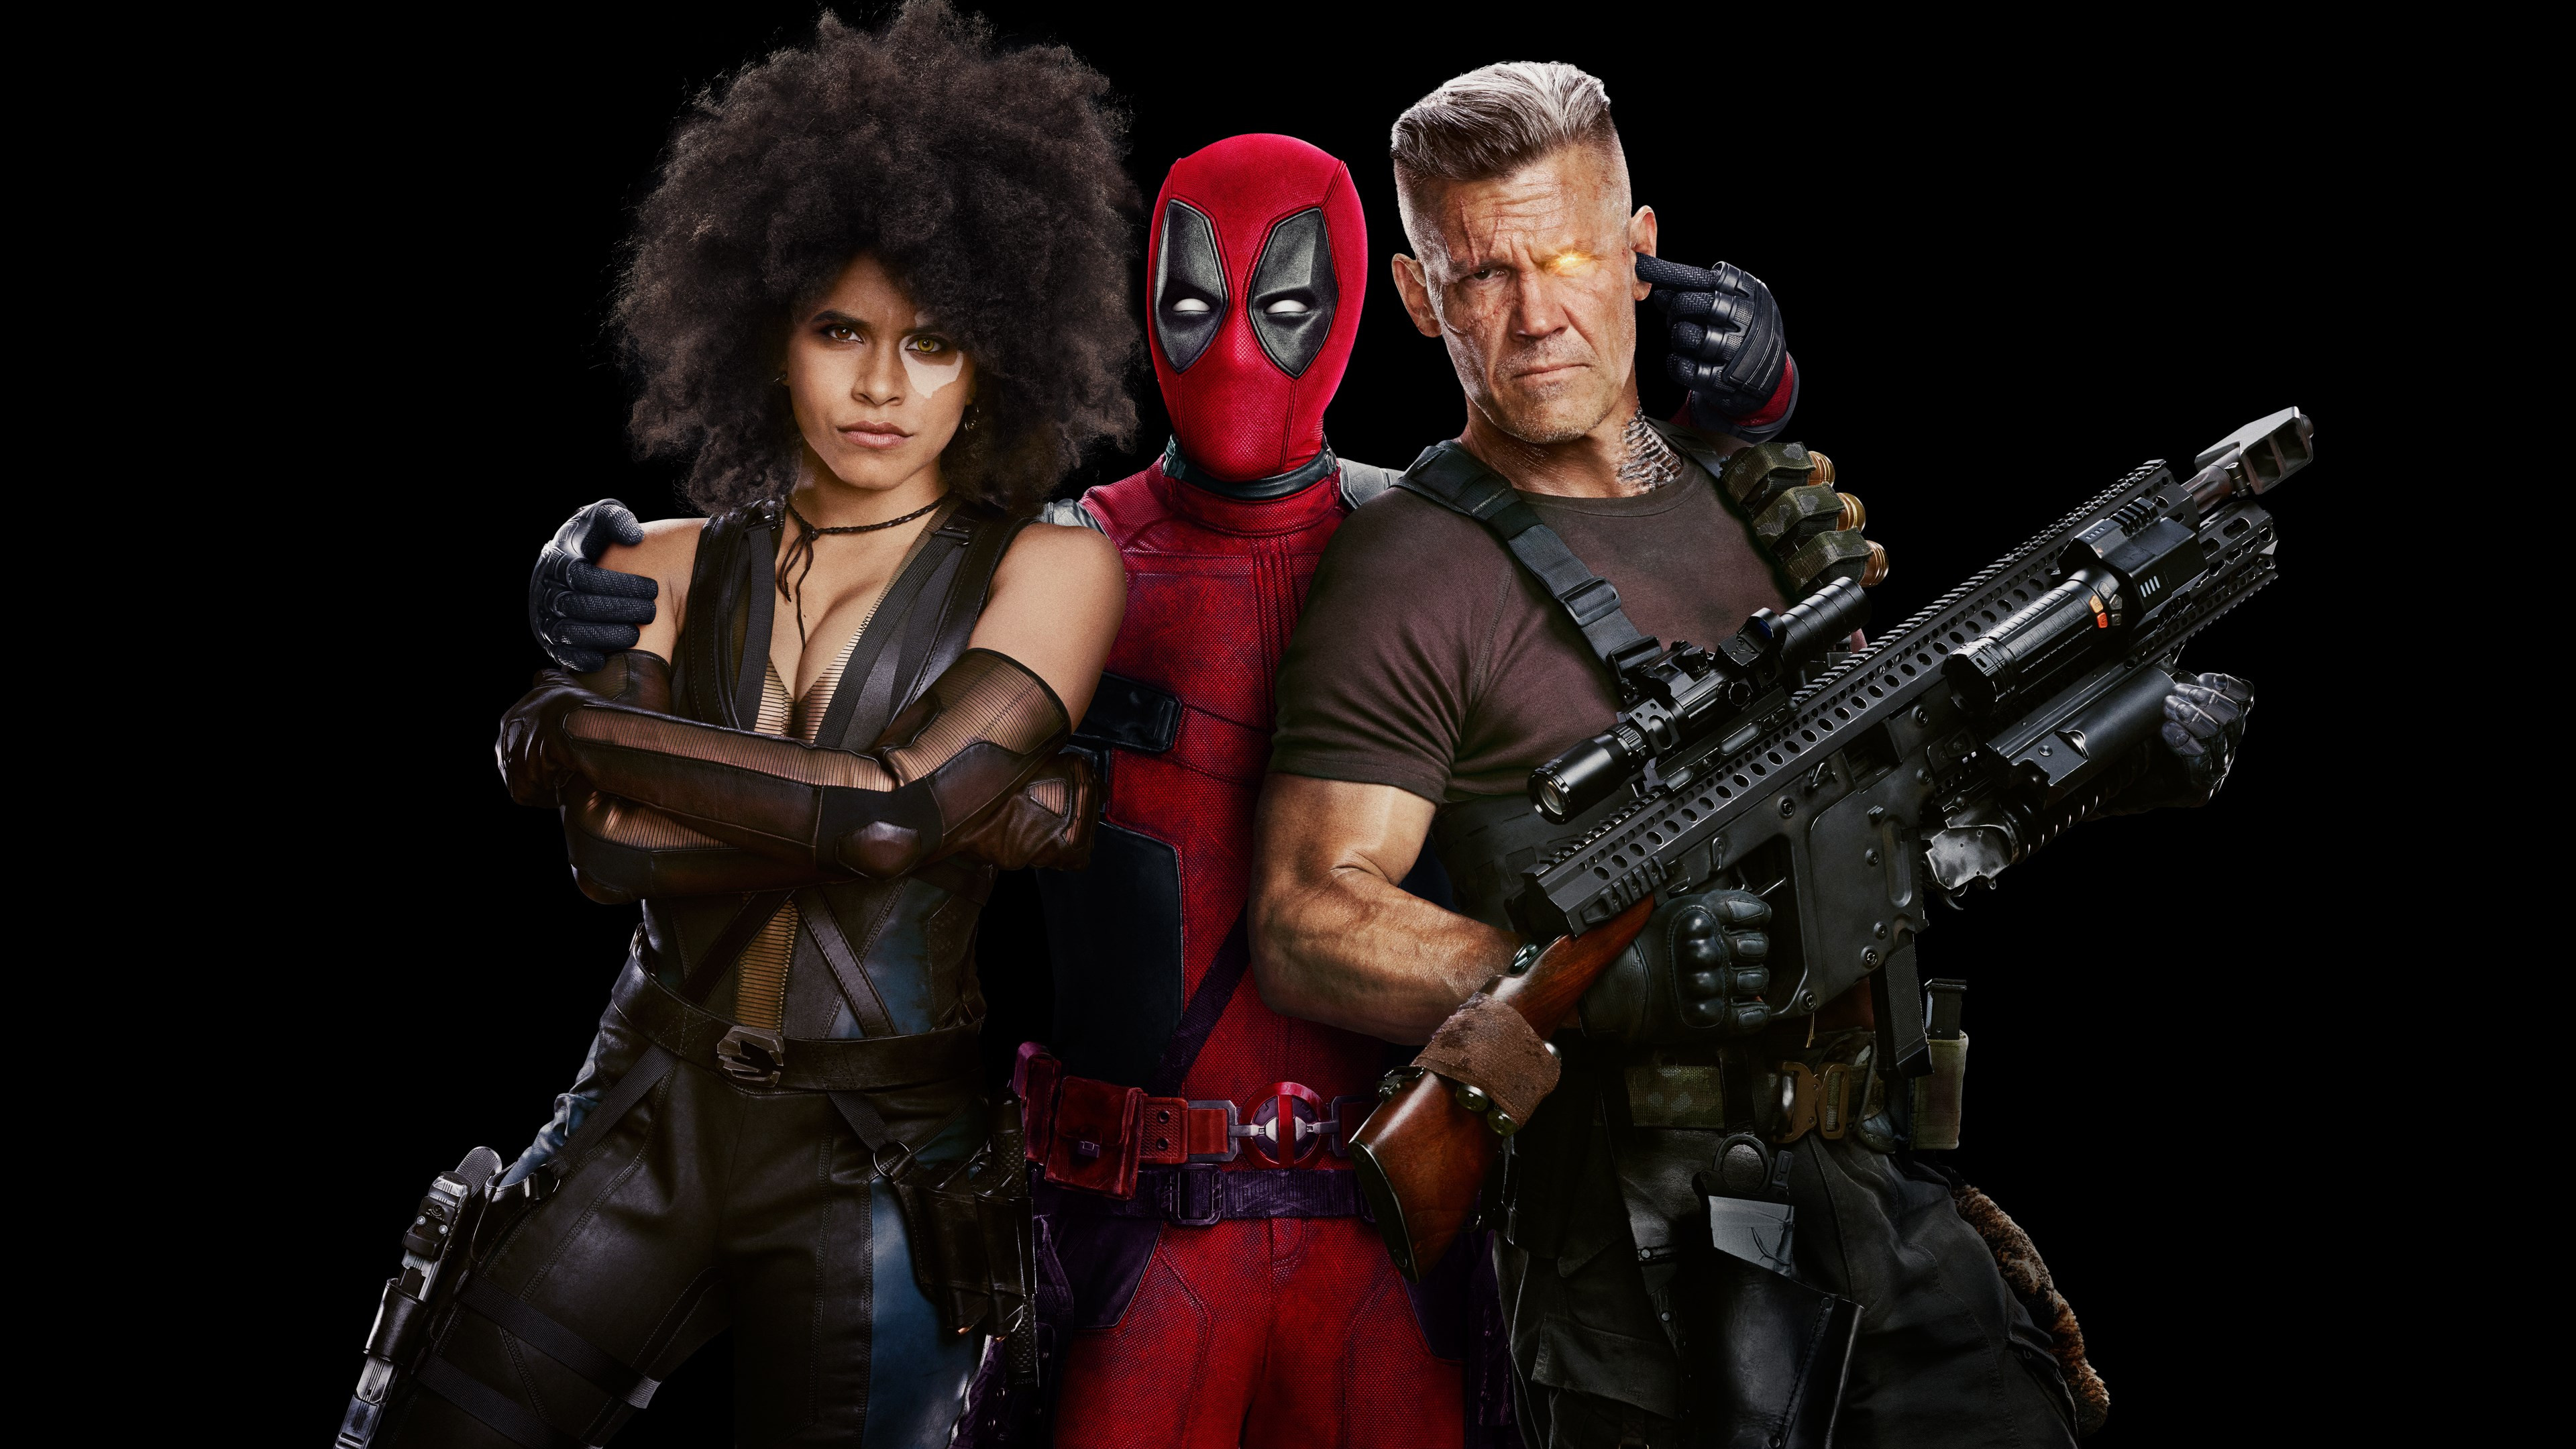 Deadpool 2 Poster wallpaper 3840x2160